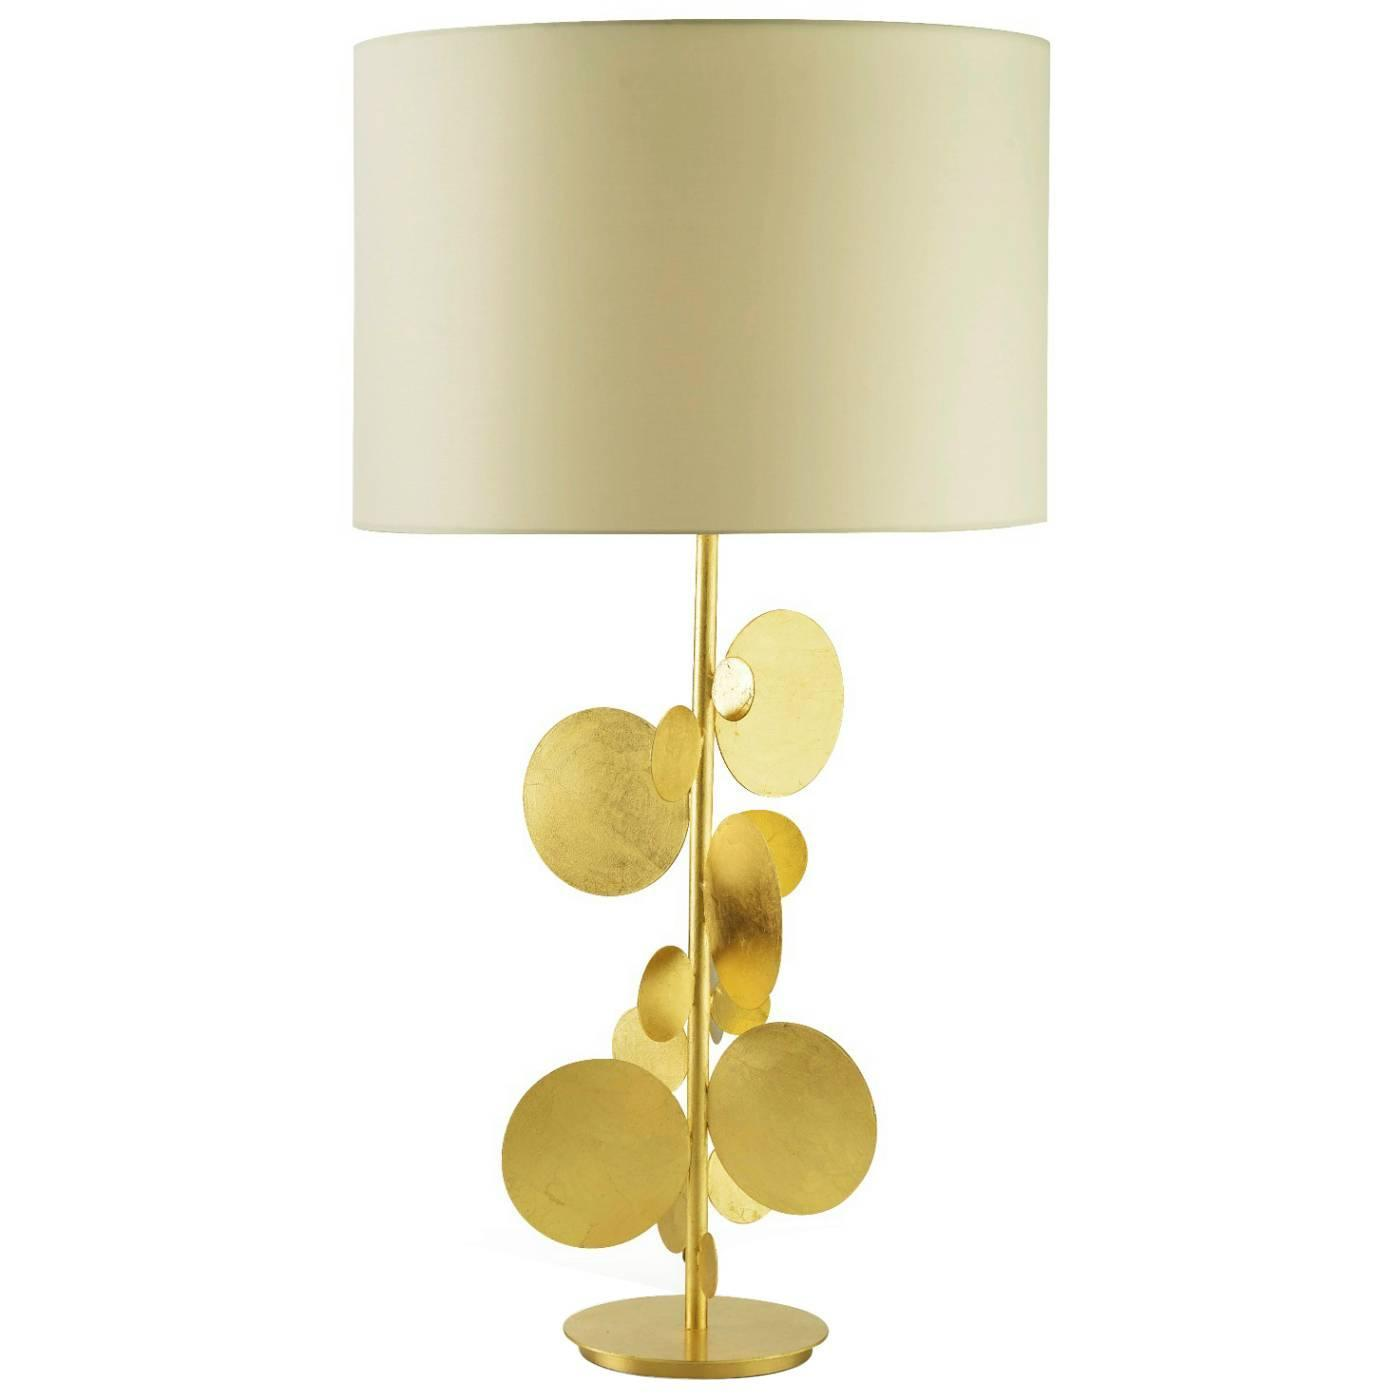 Orion Modern Table Lamp: Orion Table Lamp At 1stdibs